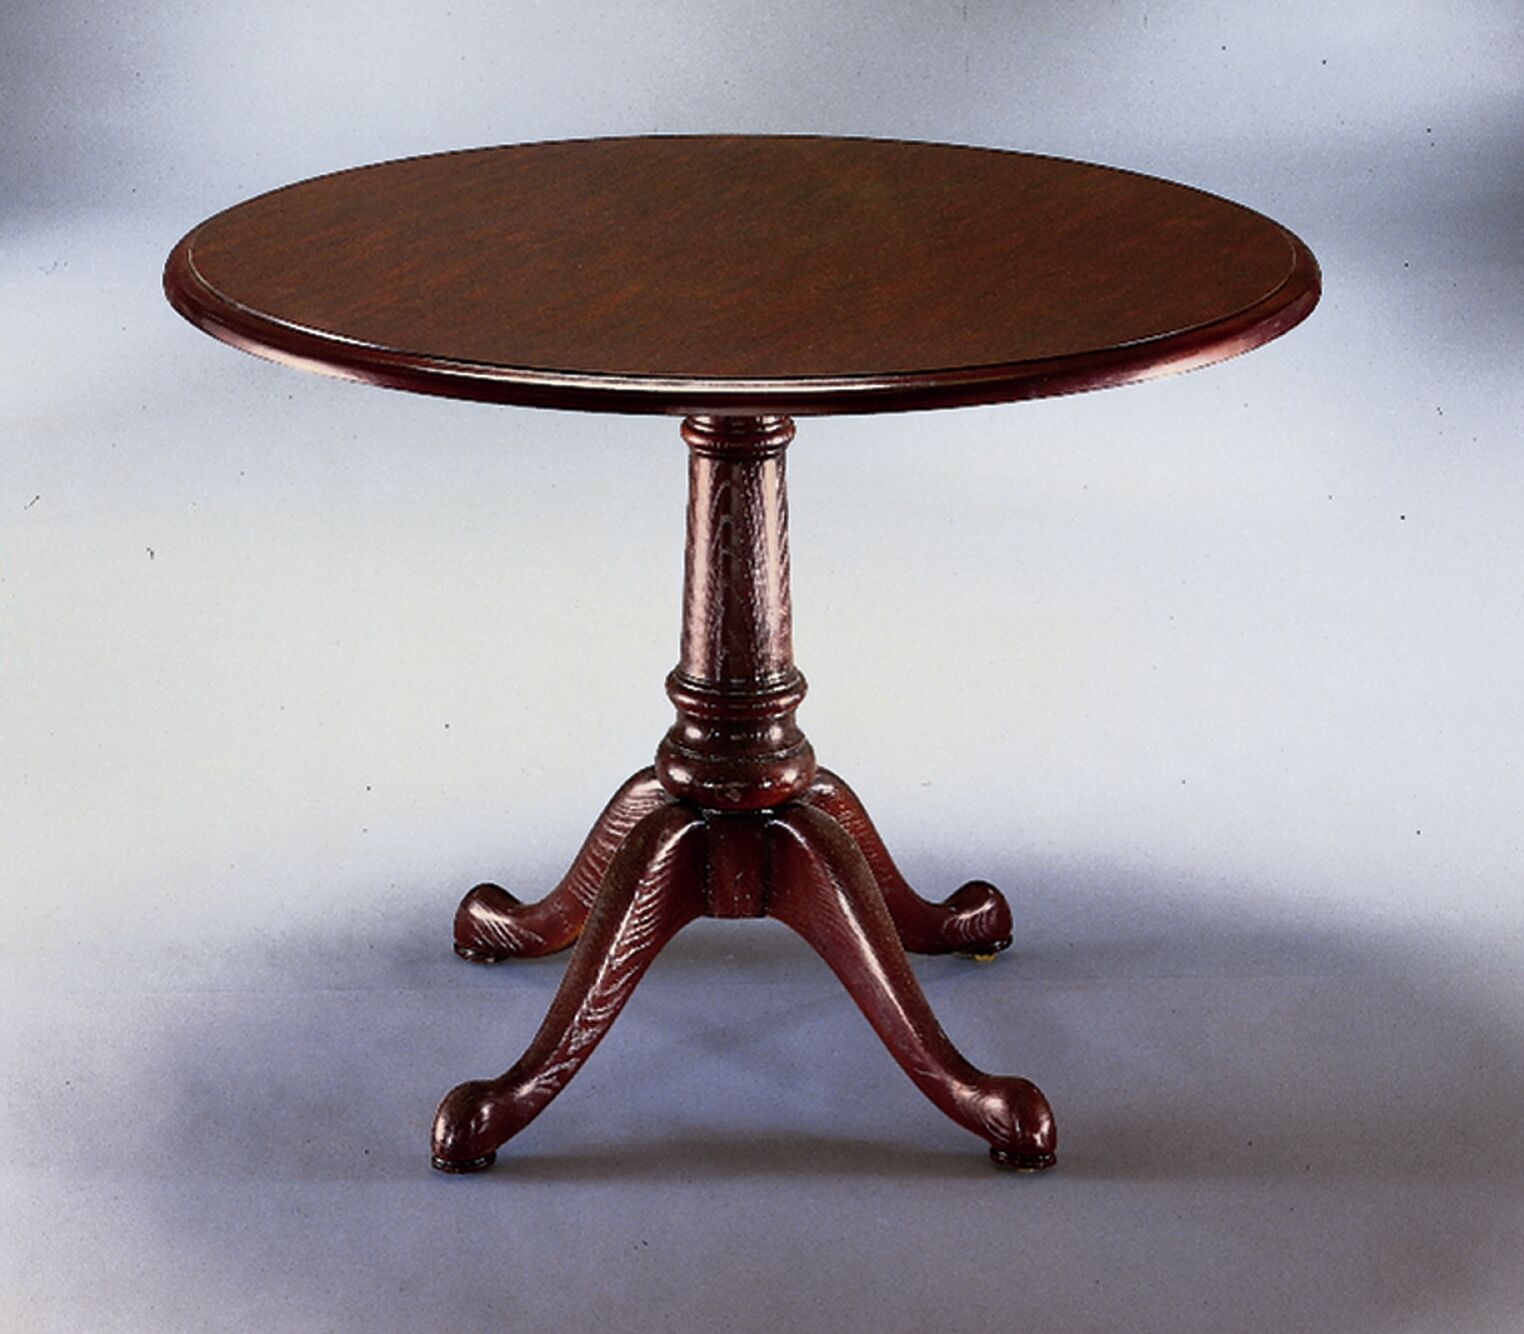 Governor's Queen Anne Circular Conference Table Size: 3' 6